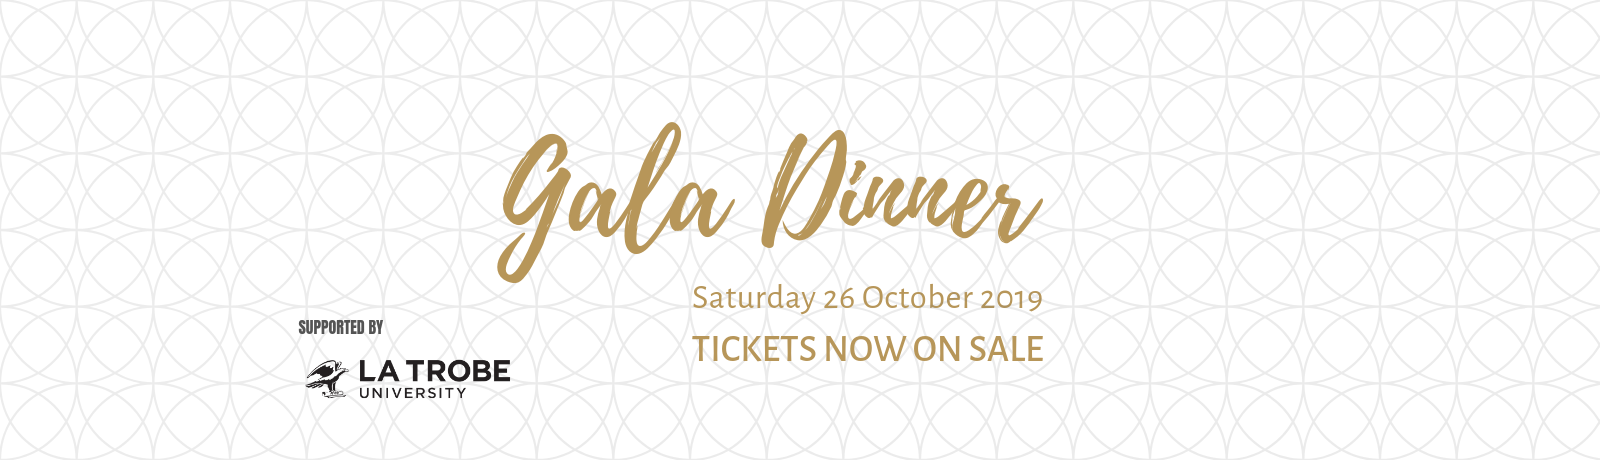 gala dinner banner with gold text